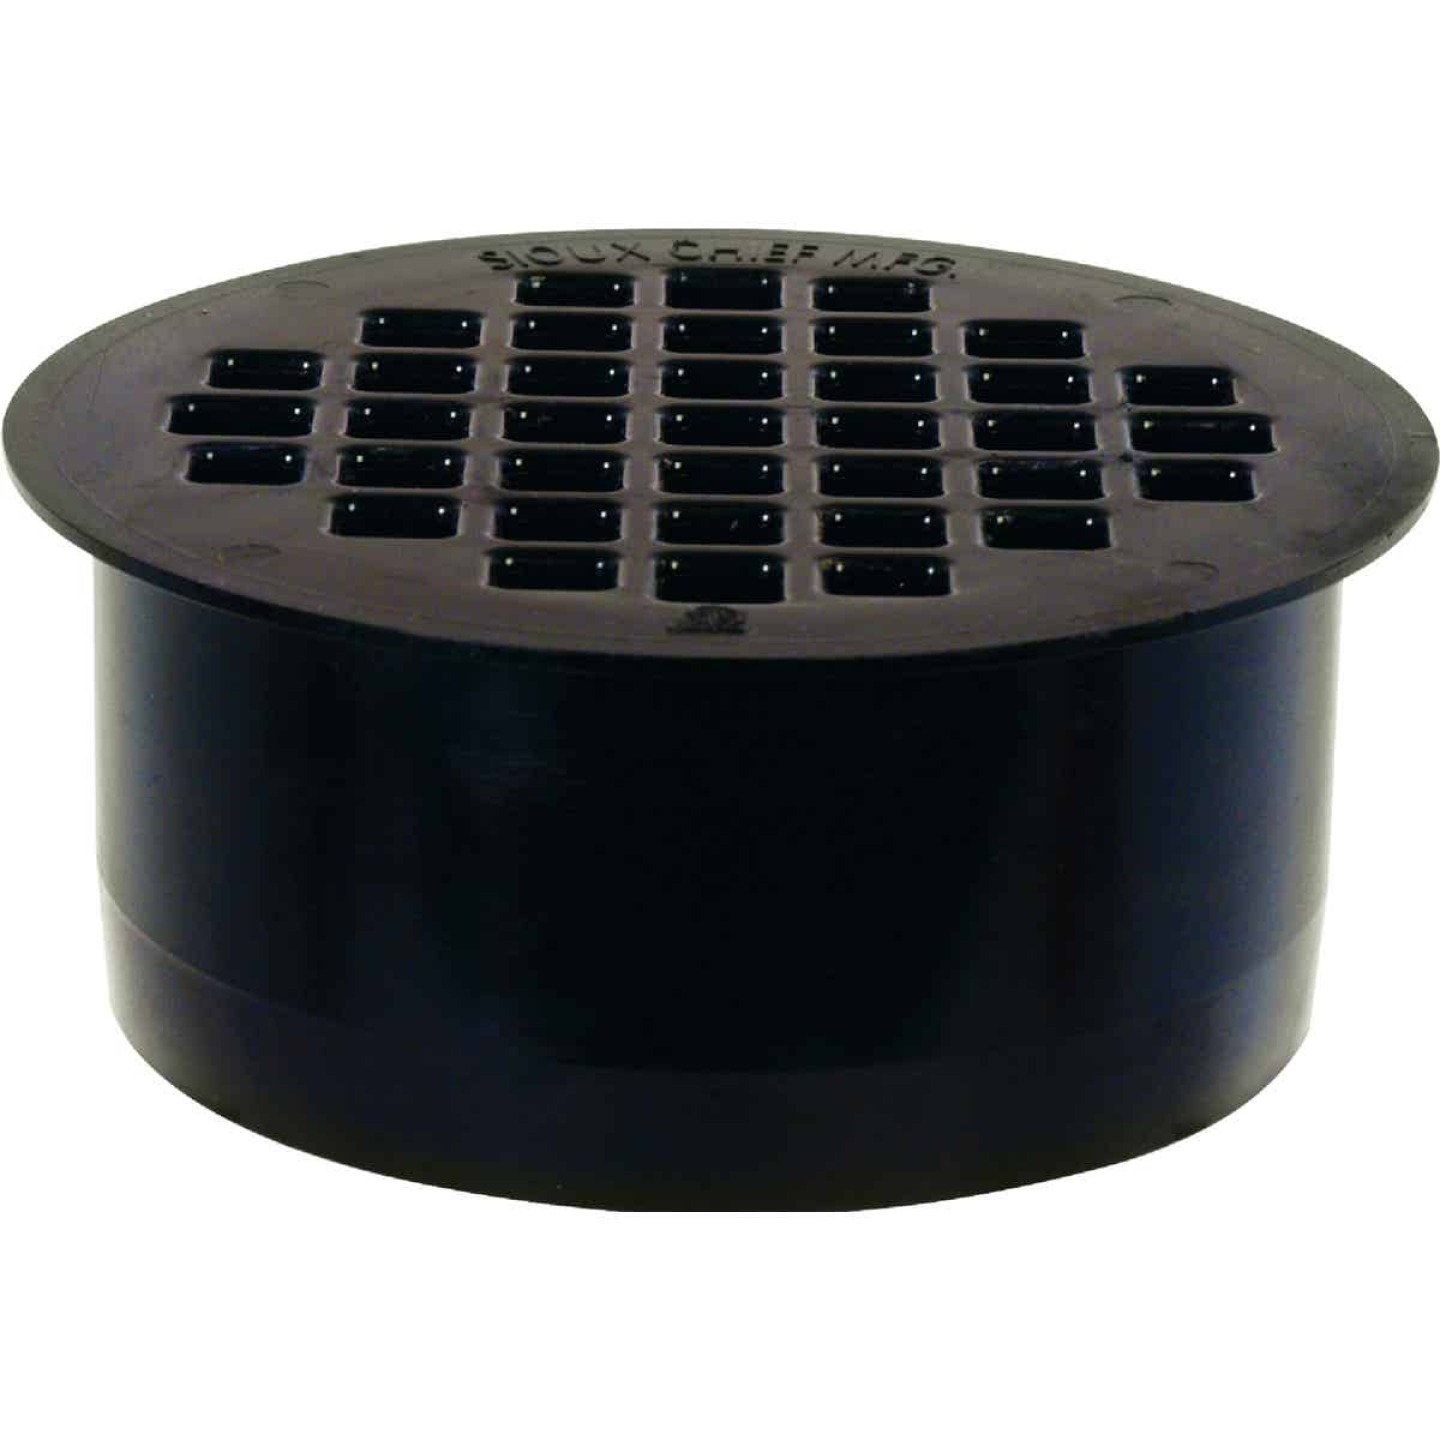 Sioux Chief 2 In. ABS Floor Drain Image 1